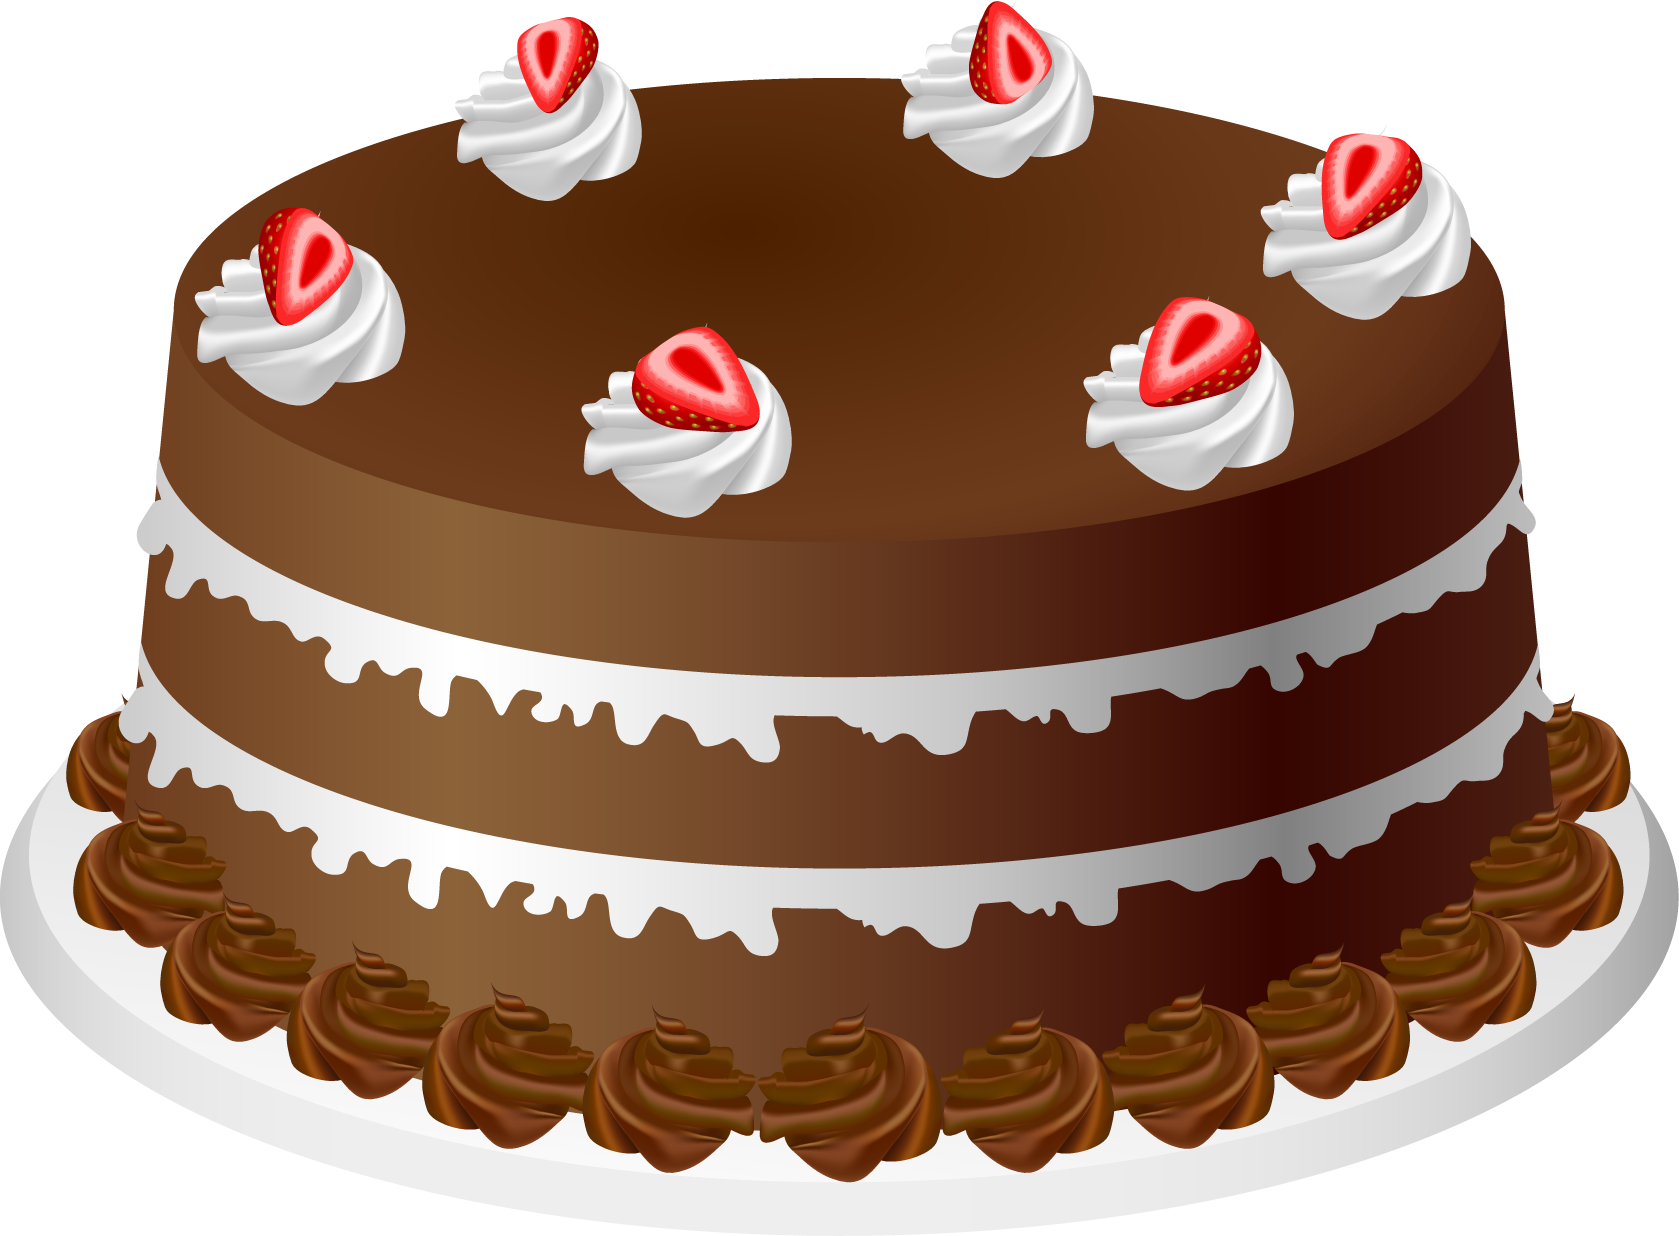 Chocolate Cake Clipart Free.